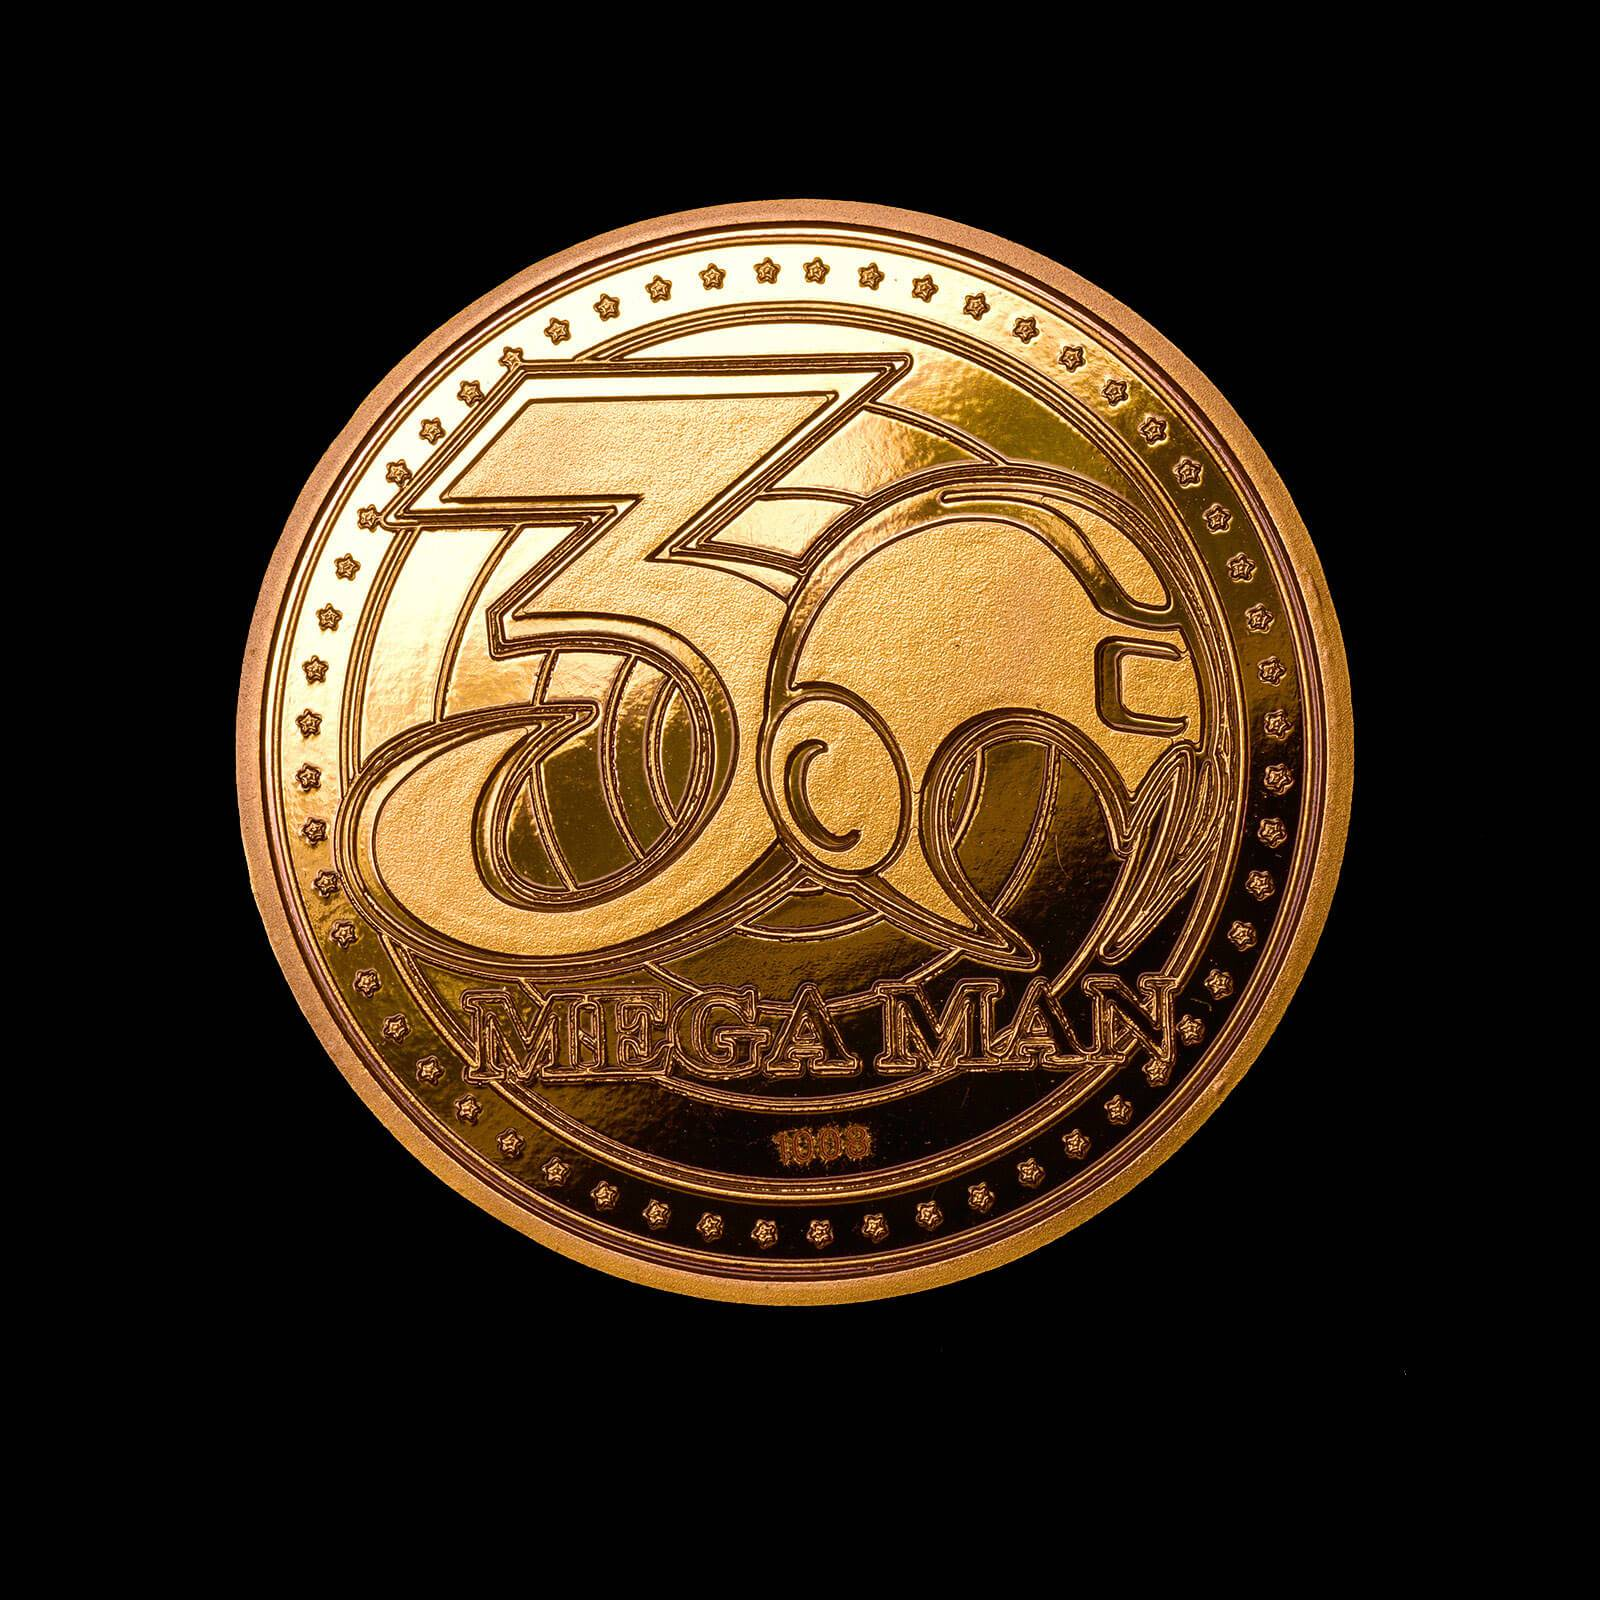 Iron Gut Publishing Mega Man Collectors Coin: Gold Variant - Zavvi Exclusive (Limited to 1000)